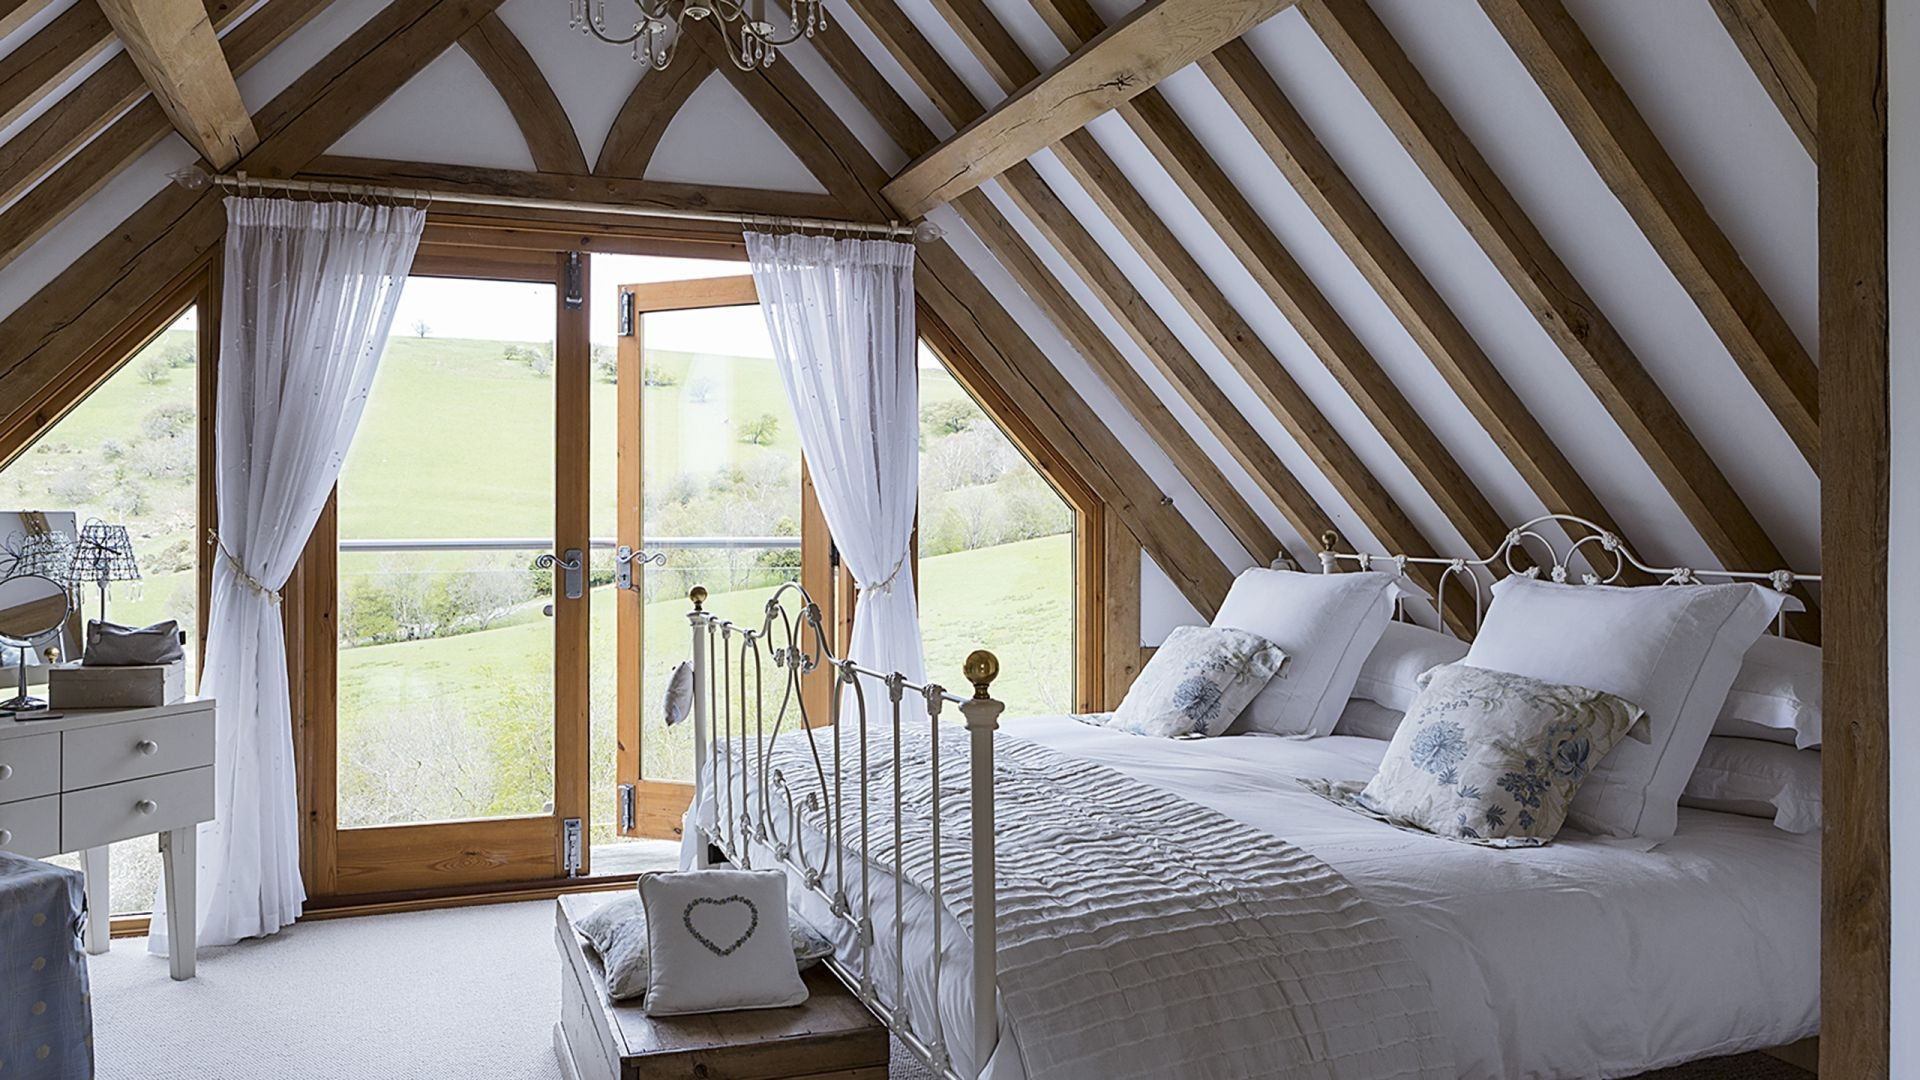 Create a relaxed and cosy bedroom retreat with floaty